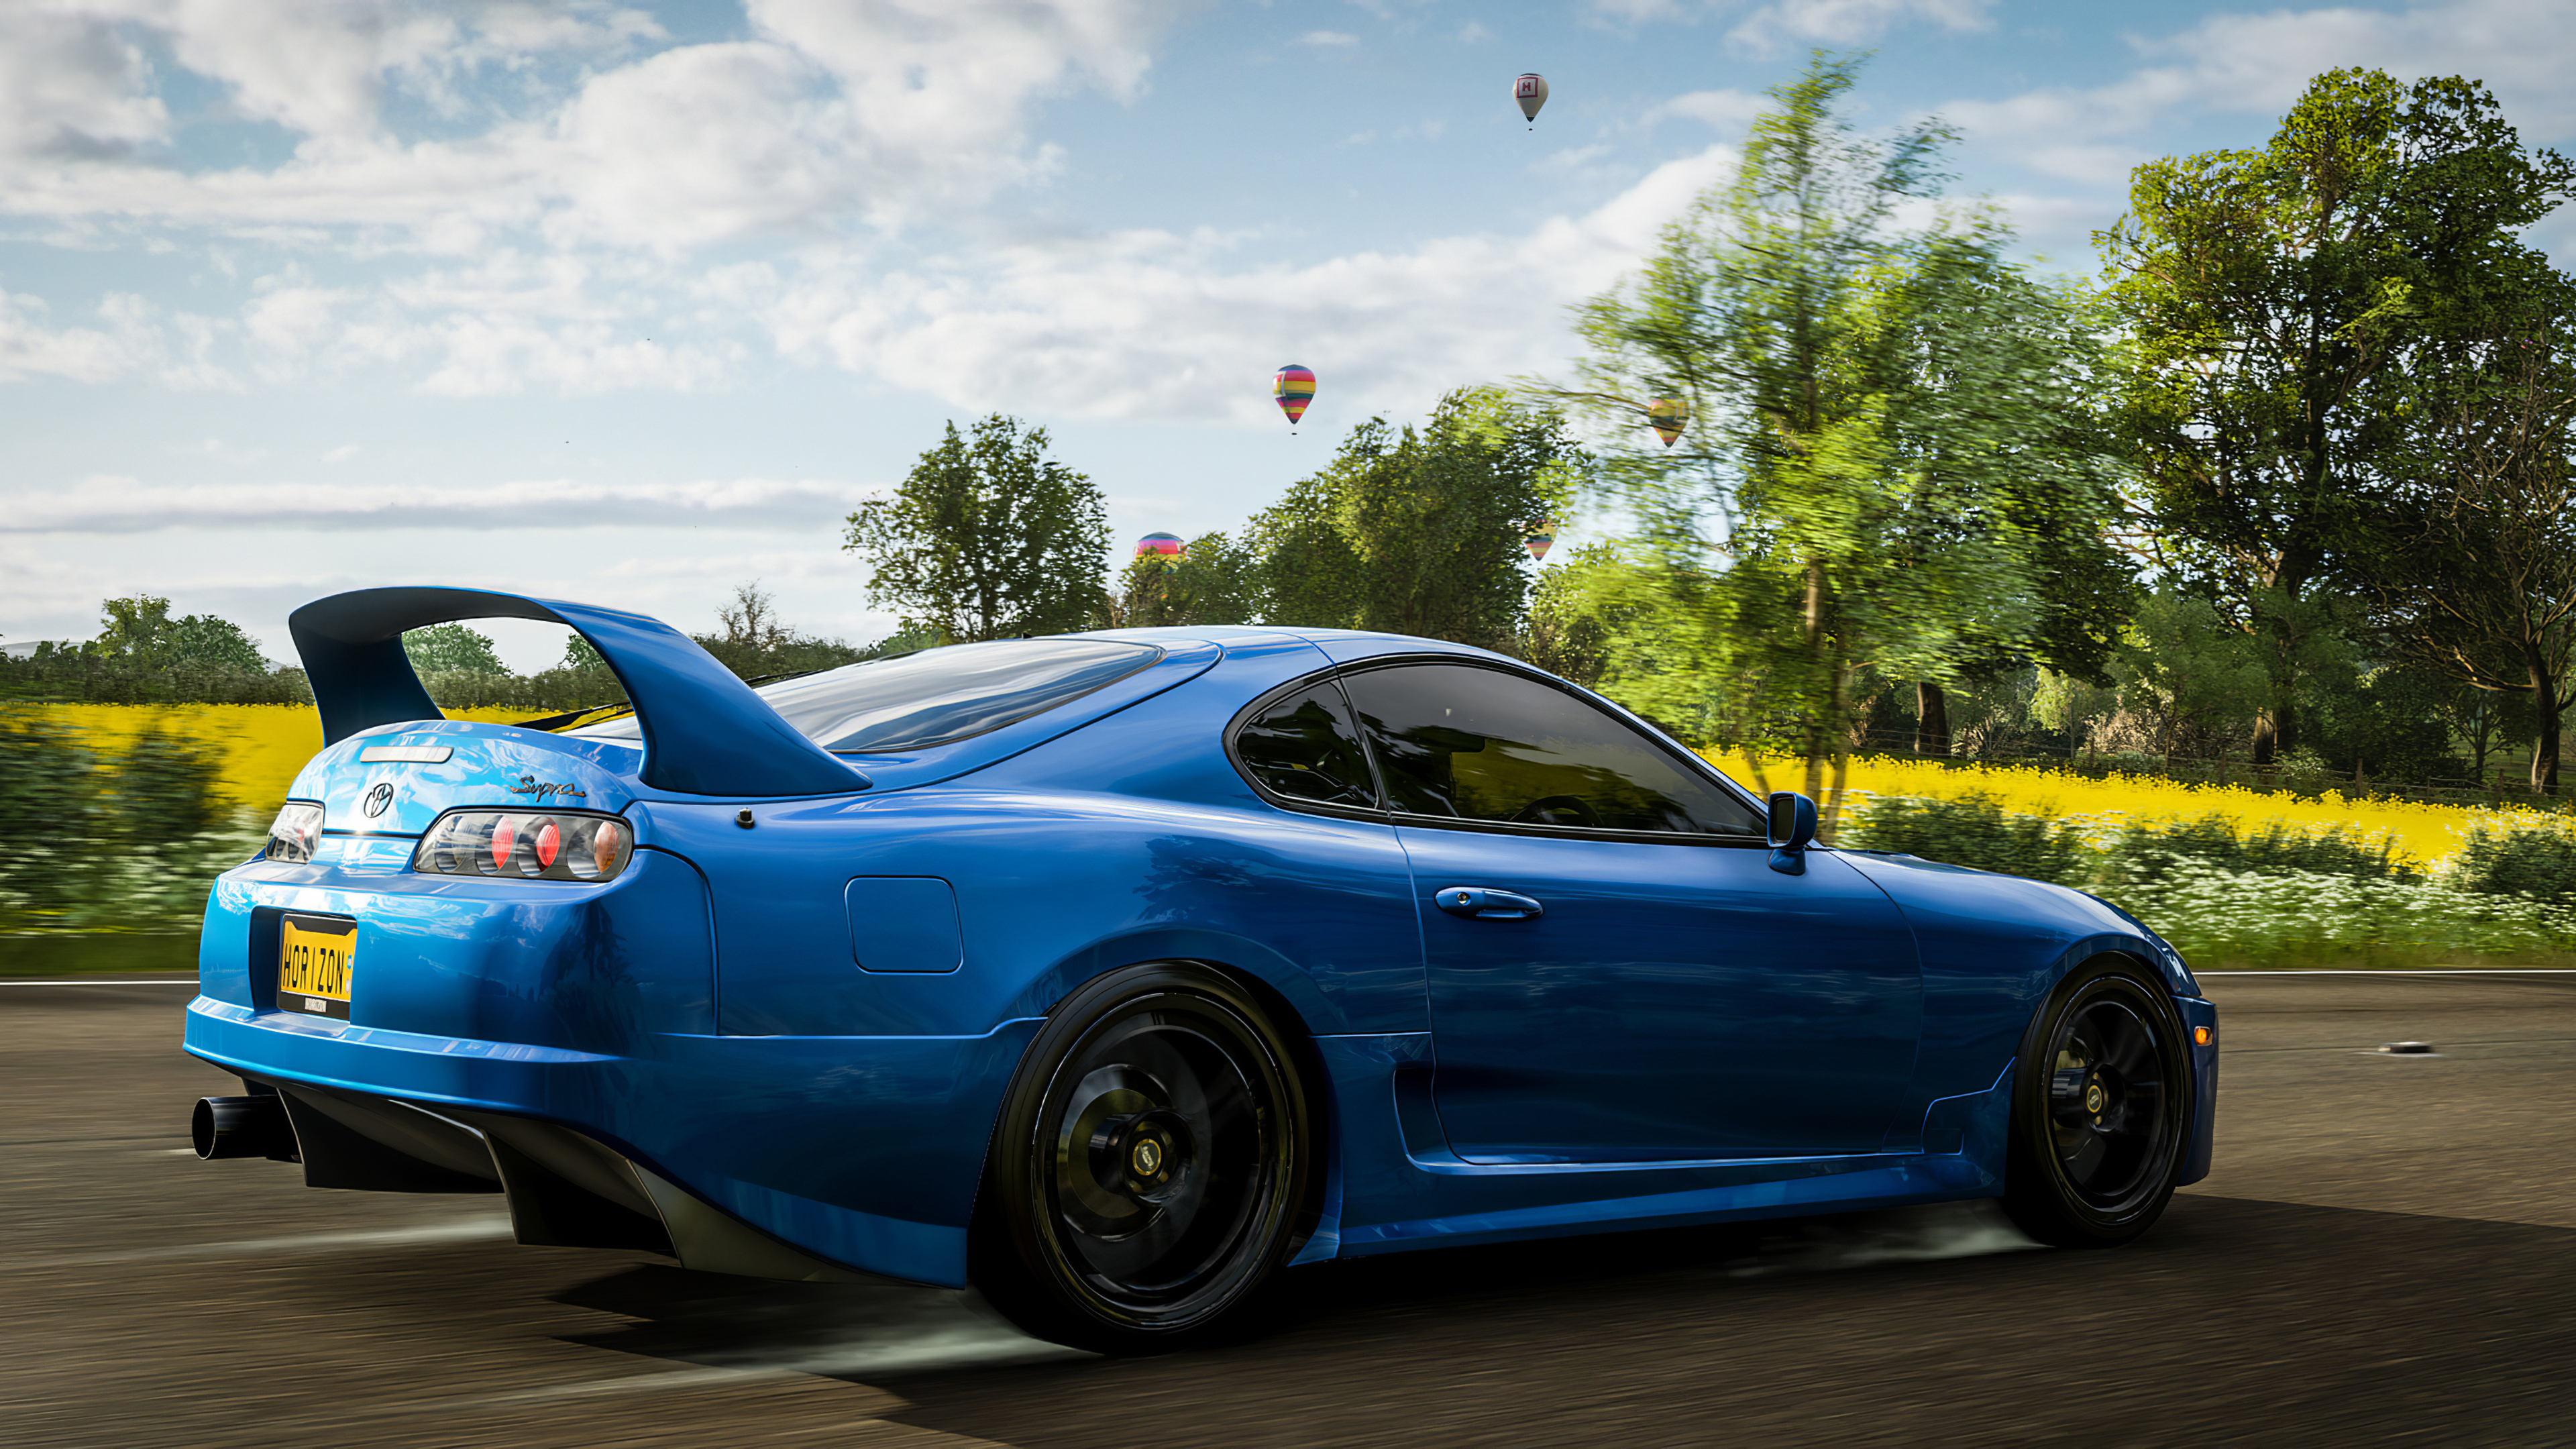 toyota supra forza horizon 4 4k 3840x2160 1 - Forza Horizon 4 Toyota Supra - Forza Horizon 4 Toyota Supra wallpapers, Forza Horizon 4 Toyota Supra 4k wallpapers, Forza Horizon 4 game wallpapers 4k